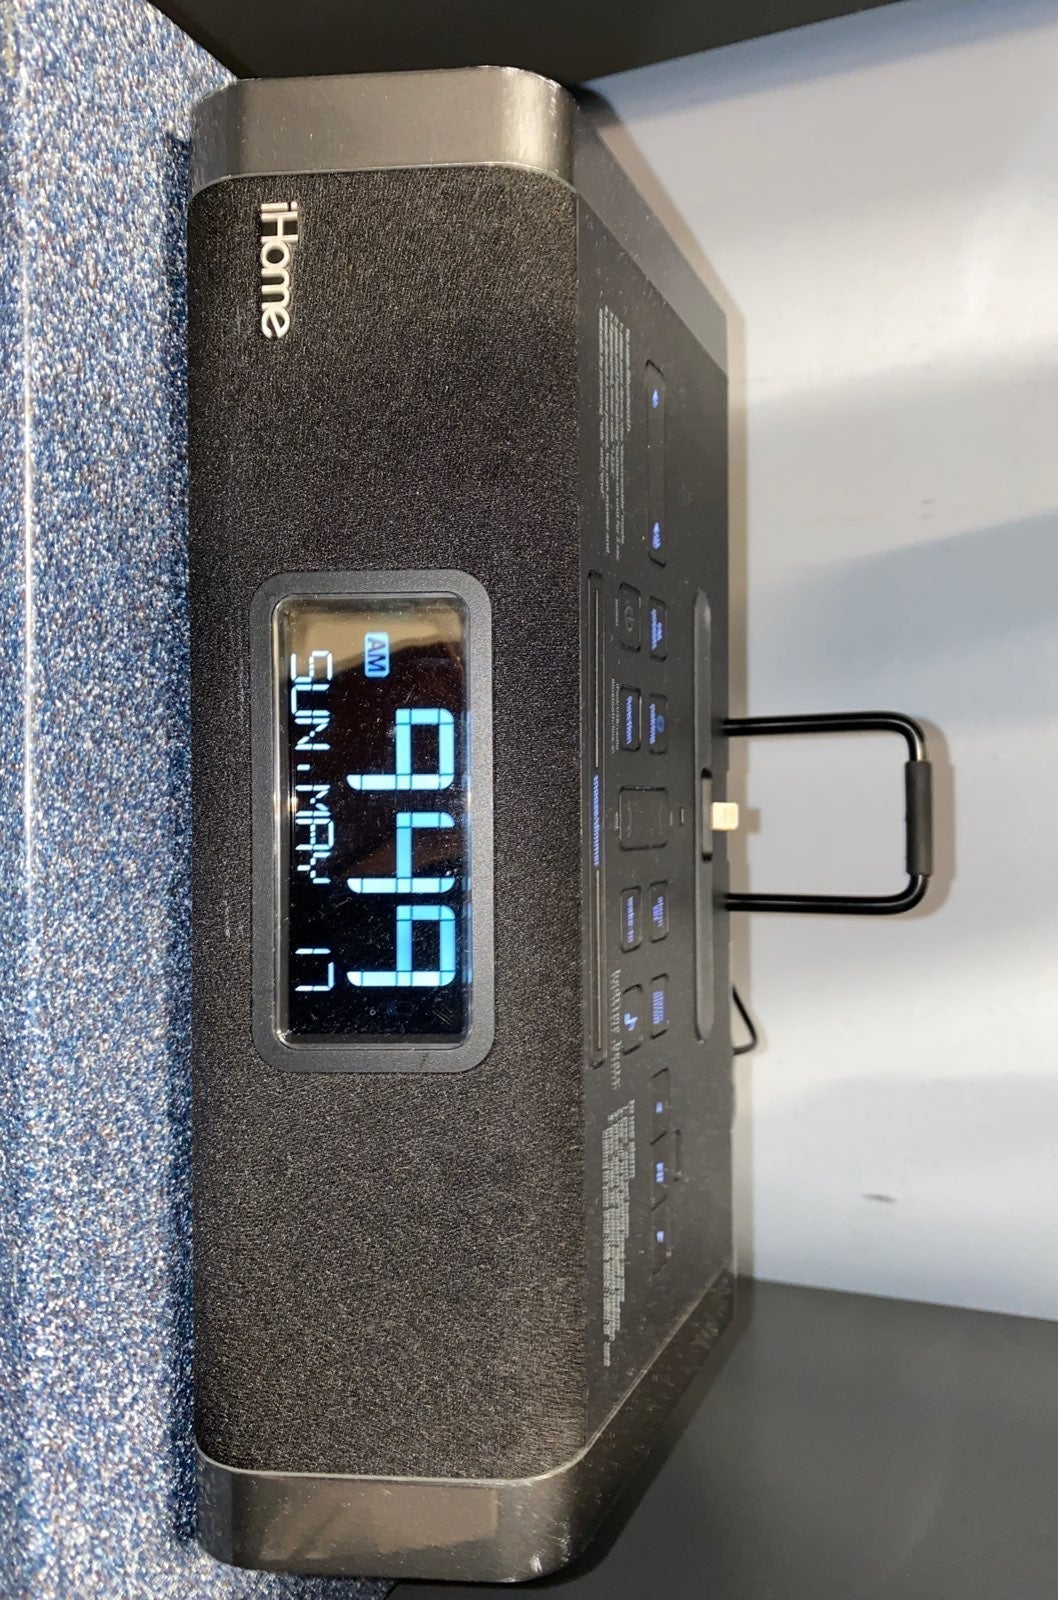 IHome hdl50